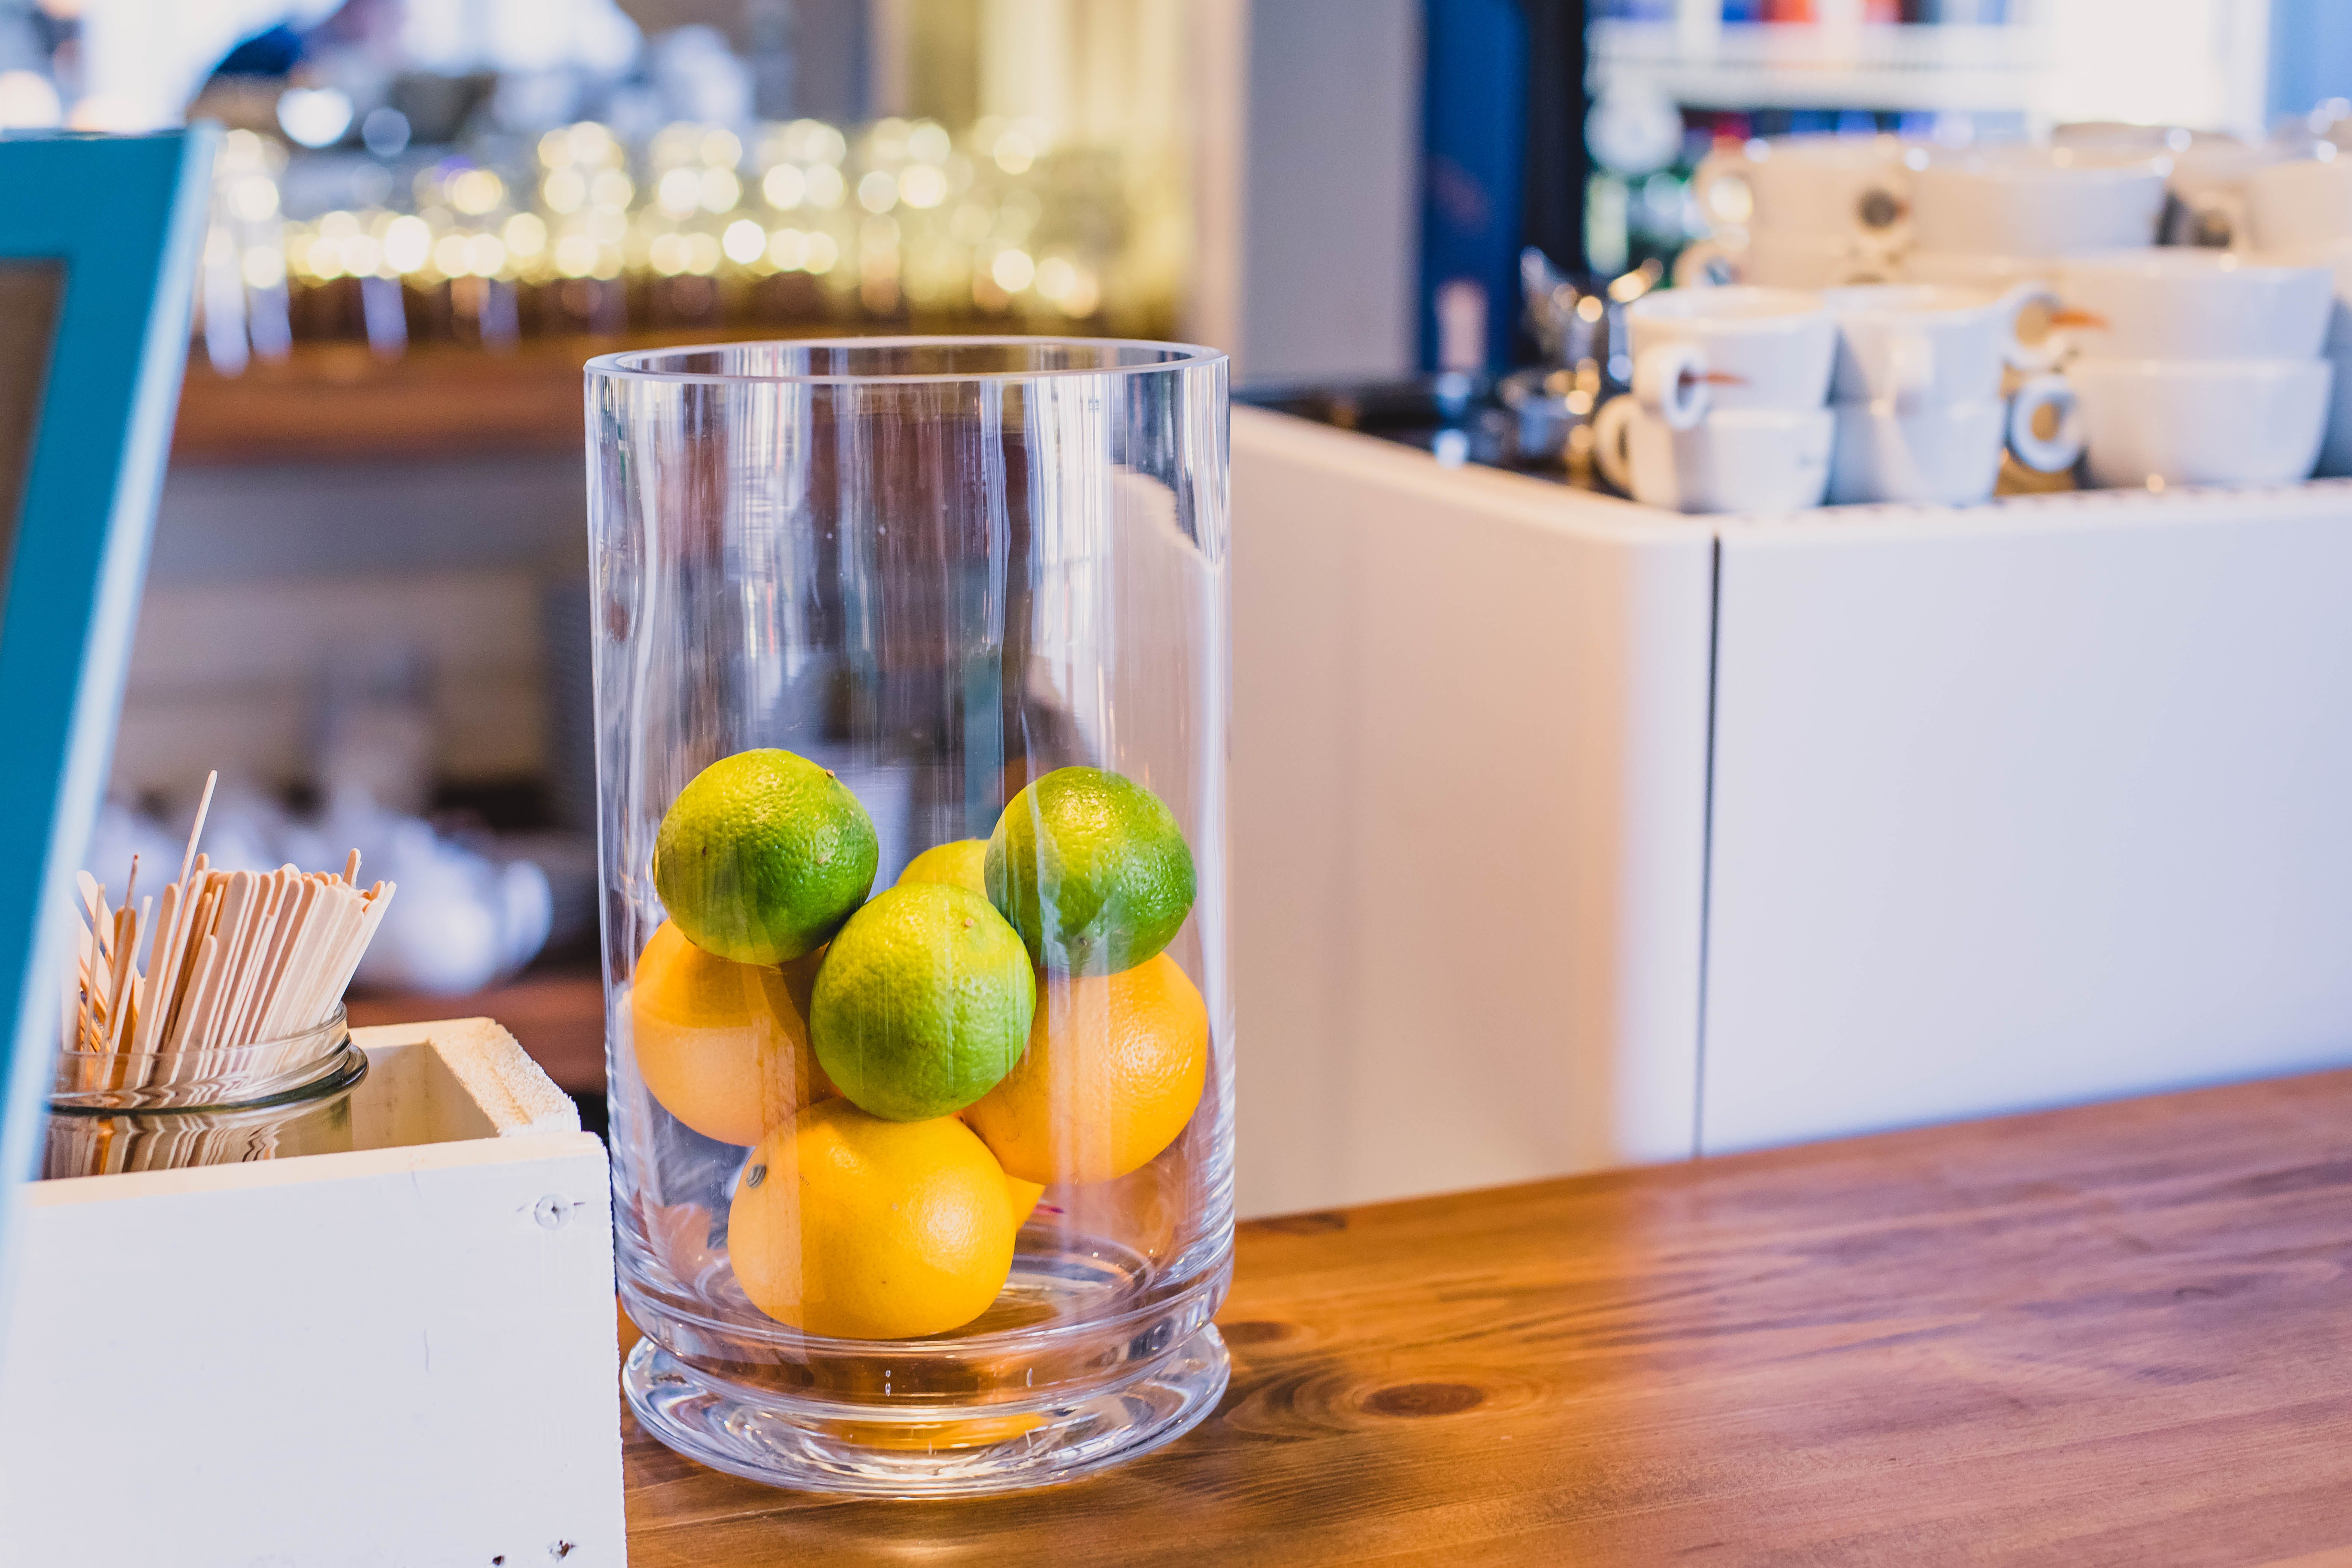 Photo of Citrus Fruits Inside a Clear Glass